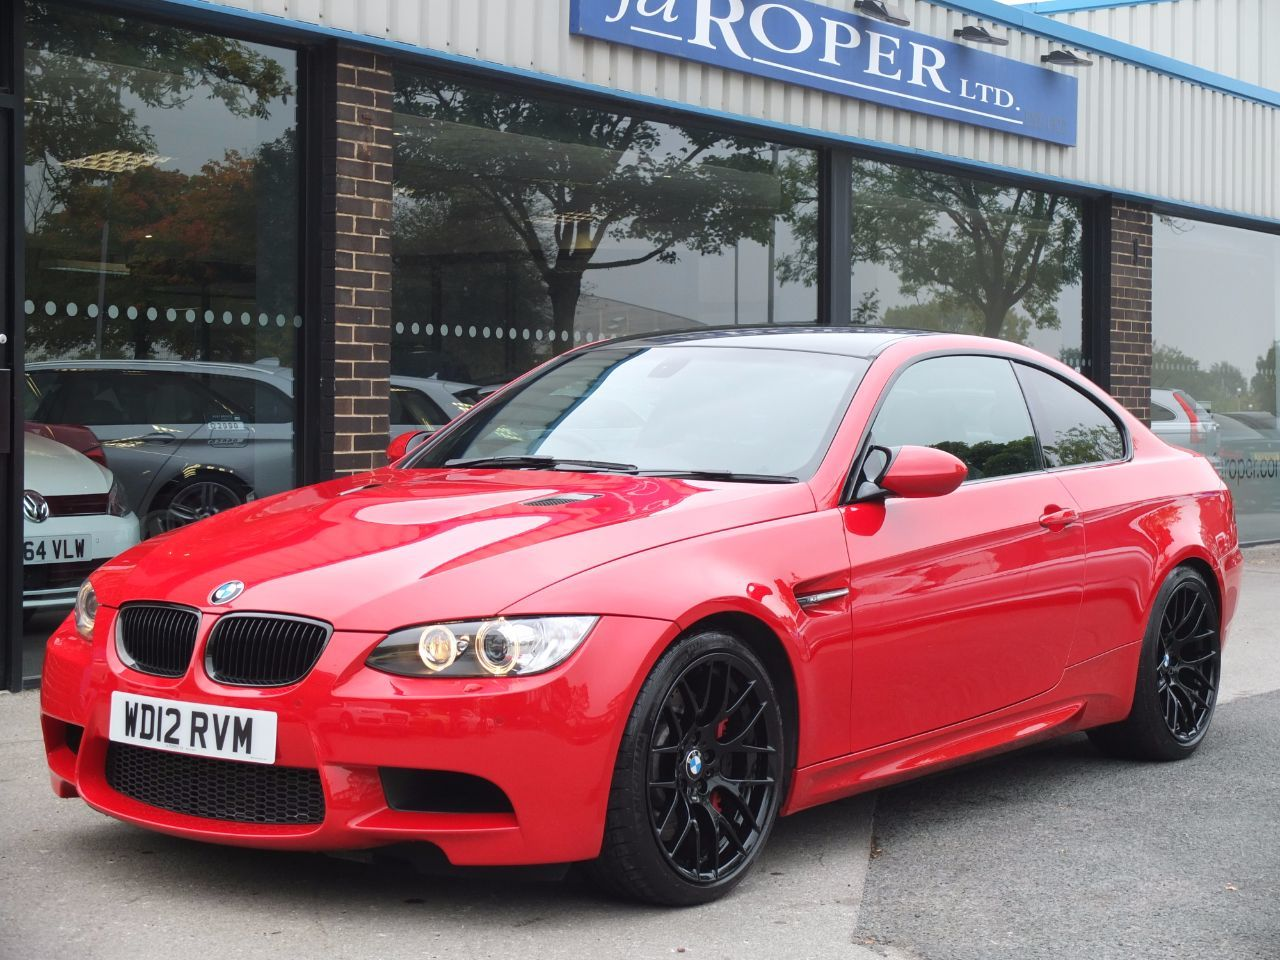 BMW M3 M3 4.0 V8 Coupe DCT Competition Pack ++++Spec Coupe Petrol Electric Red Bmw Exclusive Paint FinishBMW M3 M3 4.0 V8 Coupe DCT Competition Pack ++++Spec Coupe Petrol Electric Red Bmw Exclusive Paint Finish at fa Roper Ltd Bradford